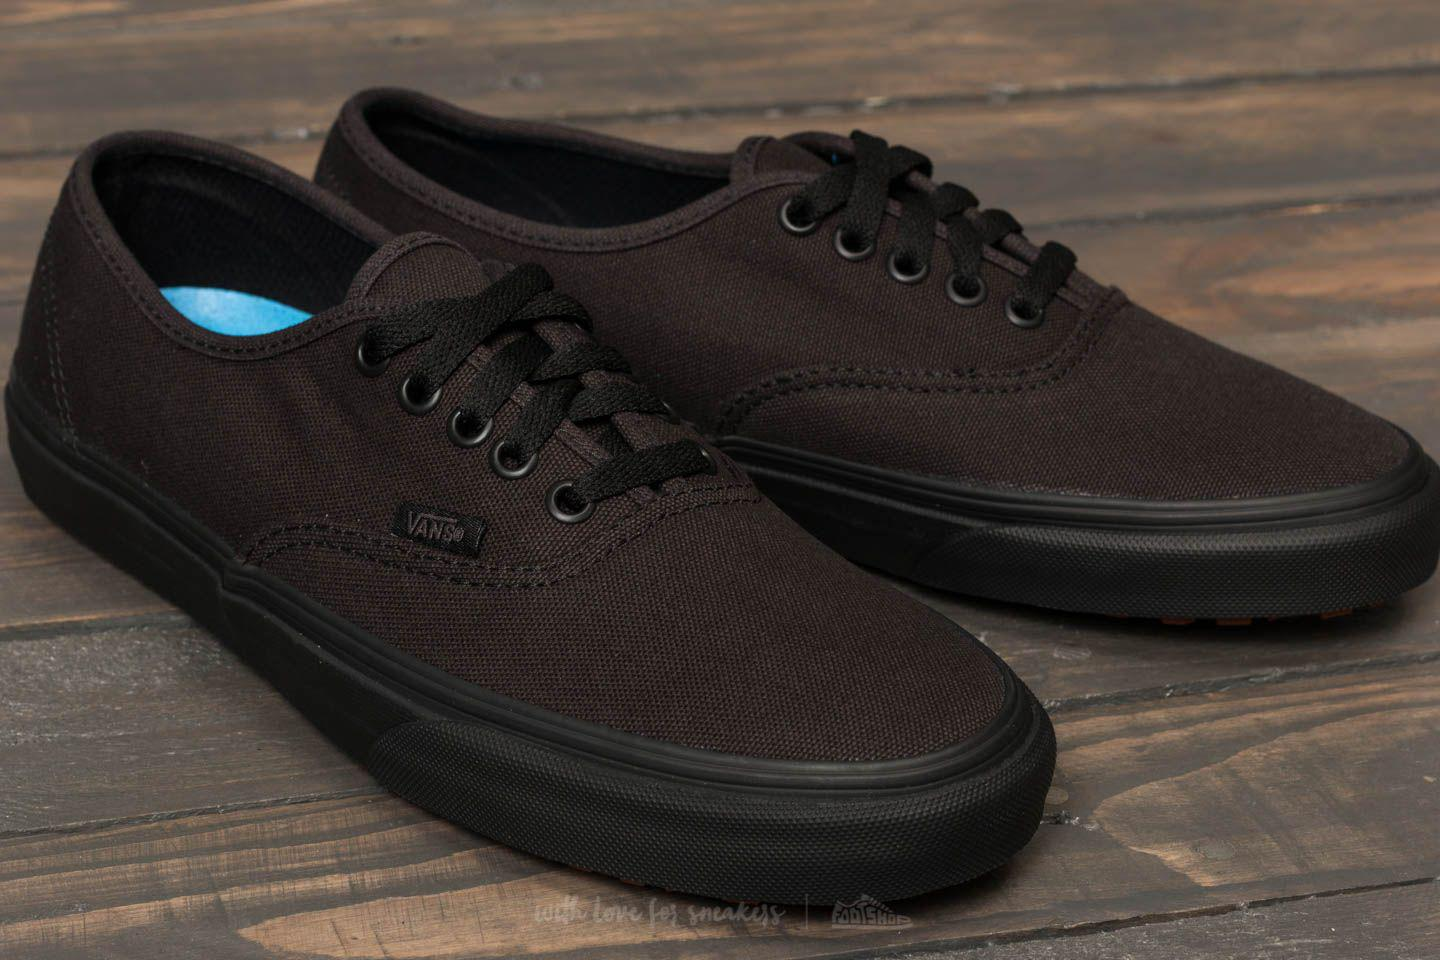 Lyst - Vans Authentic Uc (made For The Makers) Black in Black for Men 8d84a998b